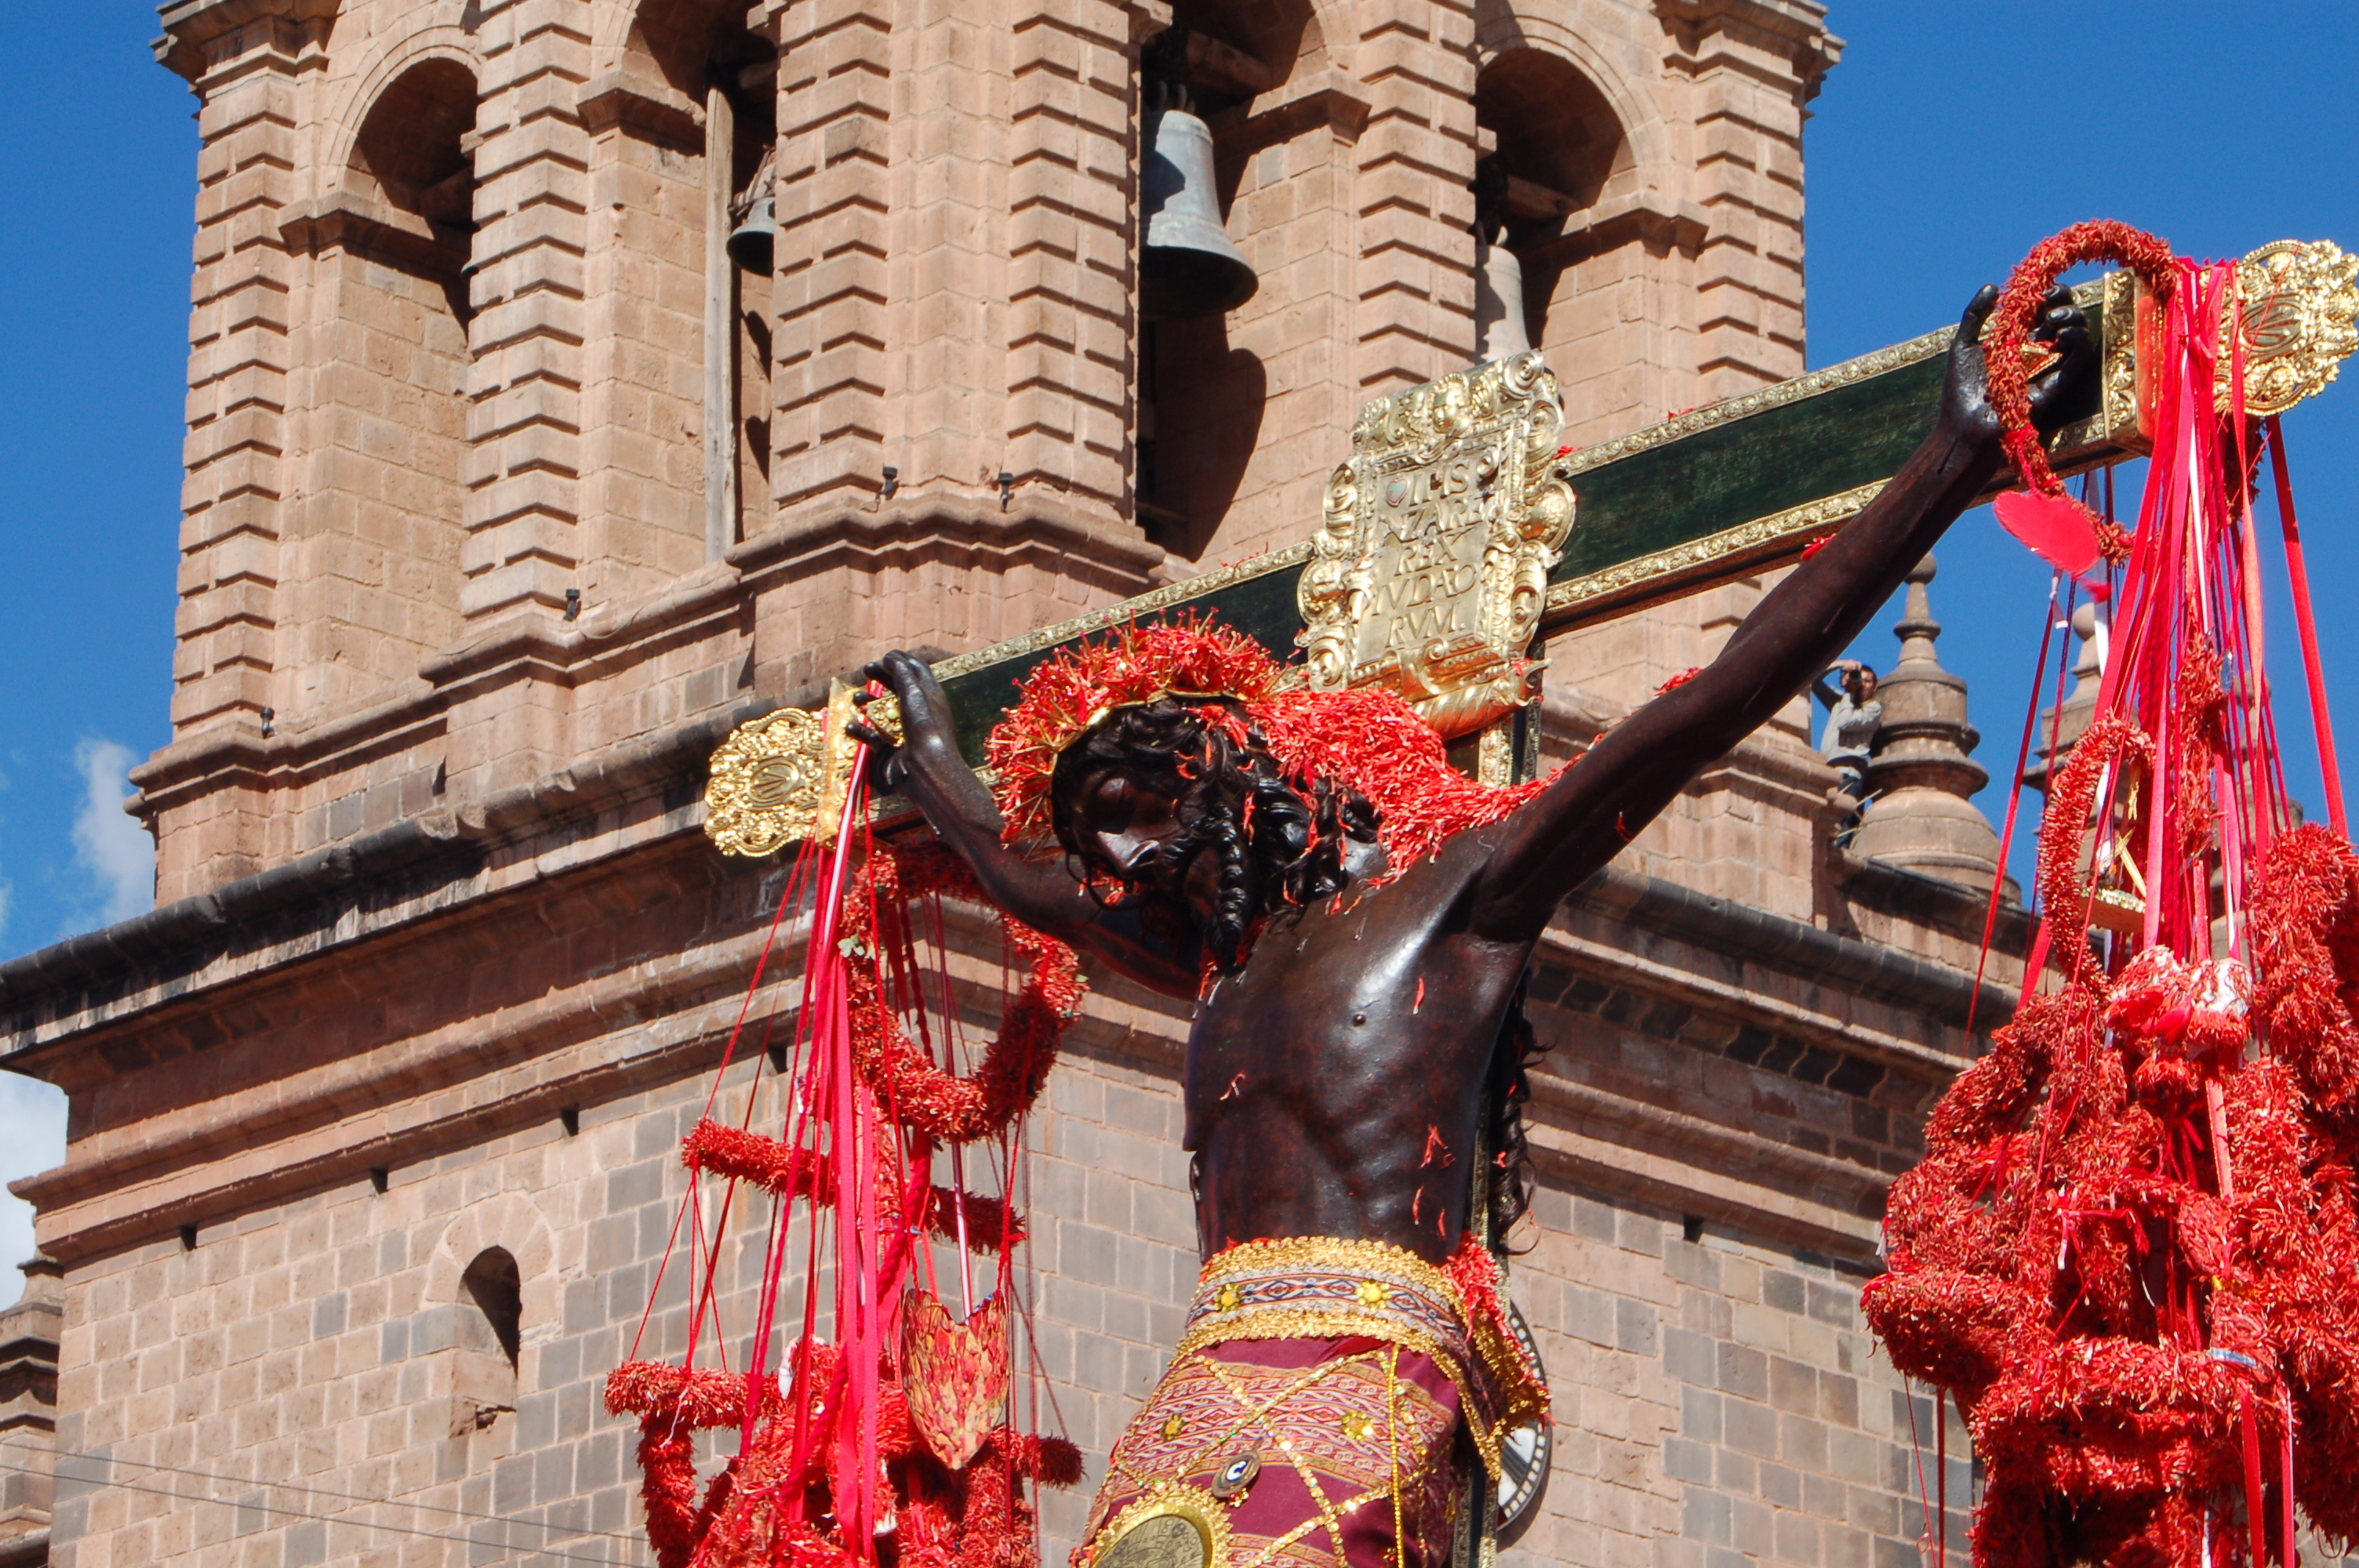 Señor de los Temblores Procession in Cusco